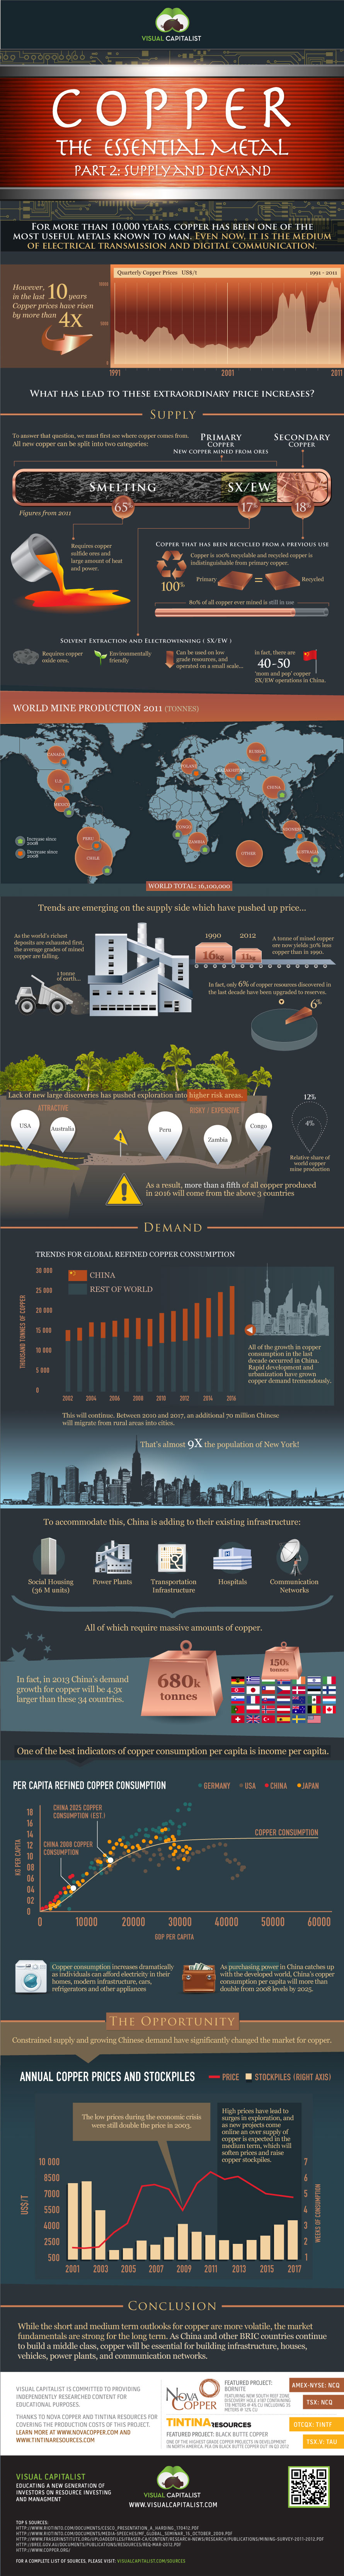 World Copper Market-Infographic